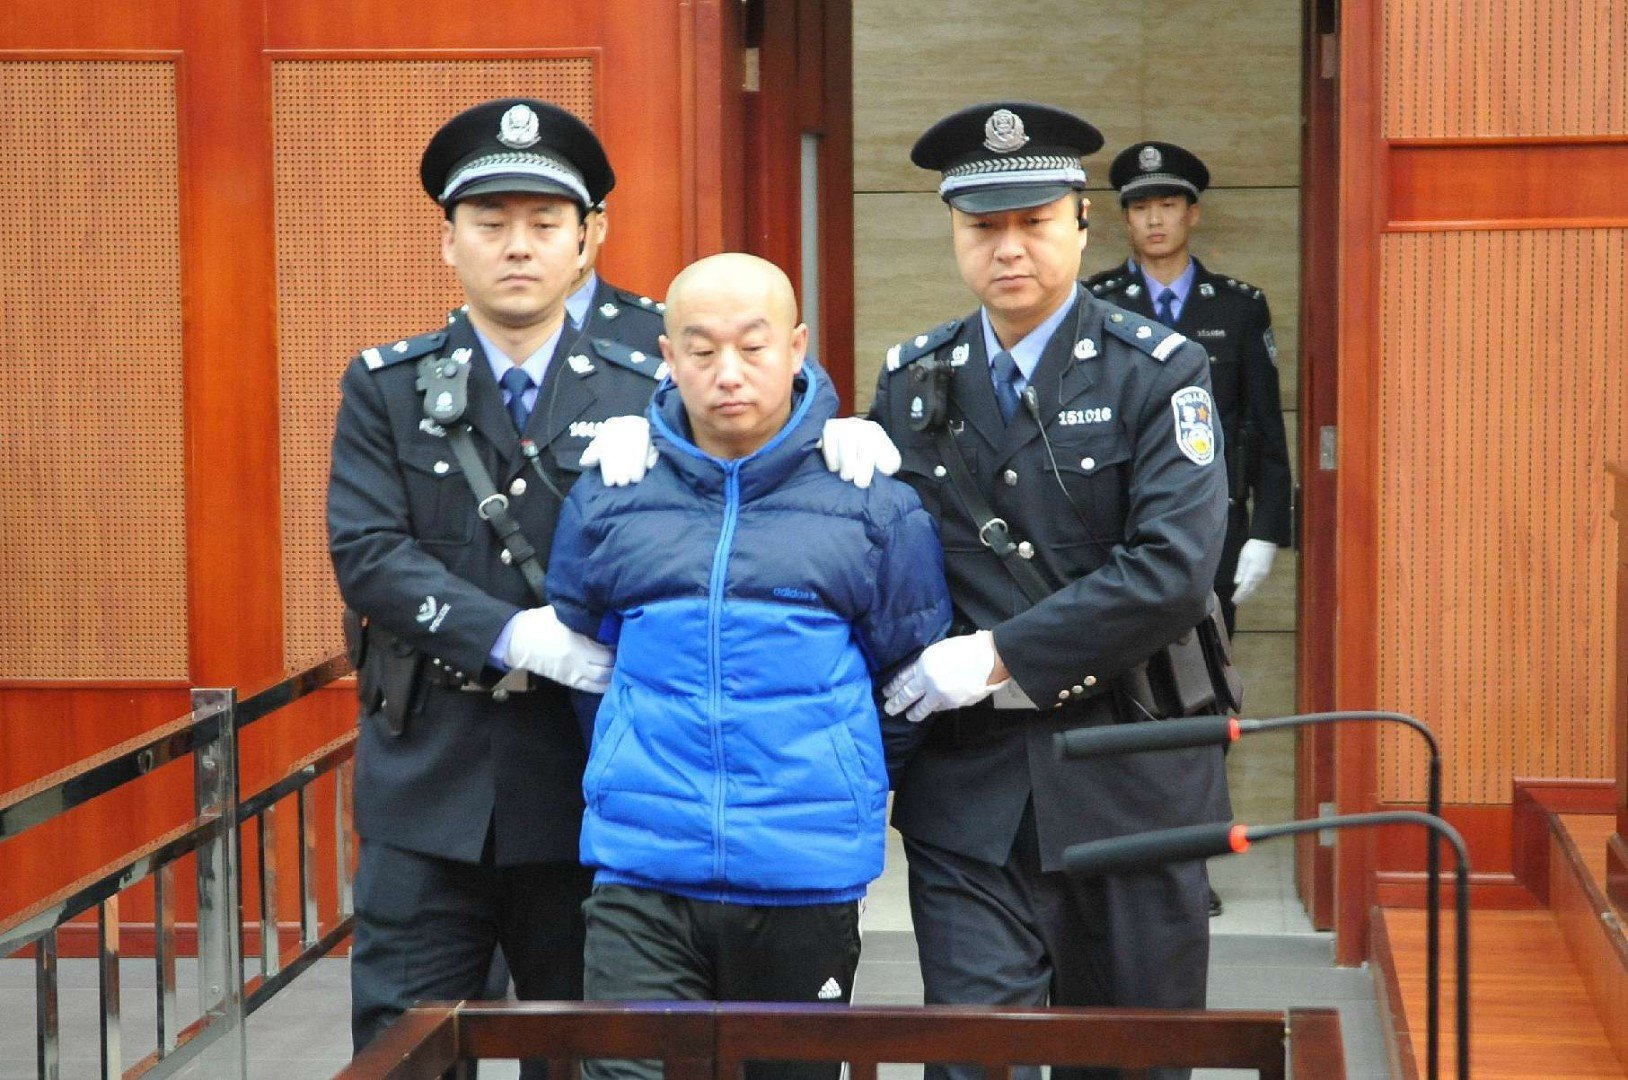 No sign of change in China's deeply flawed criminal justice